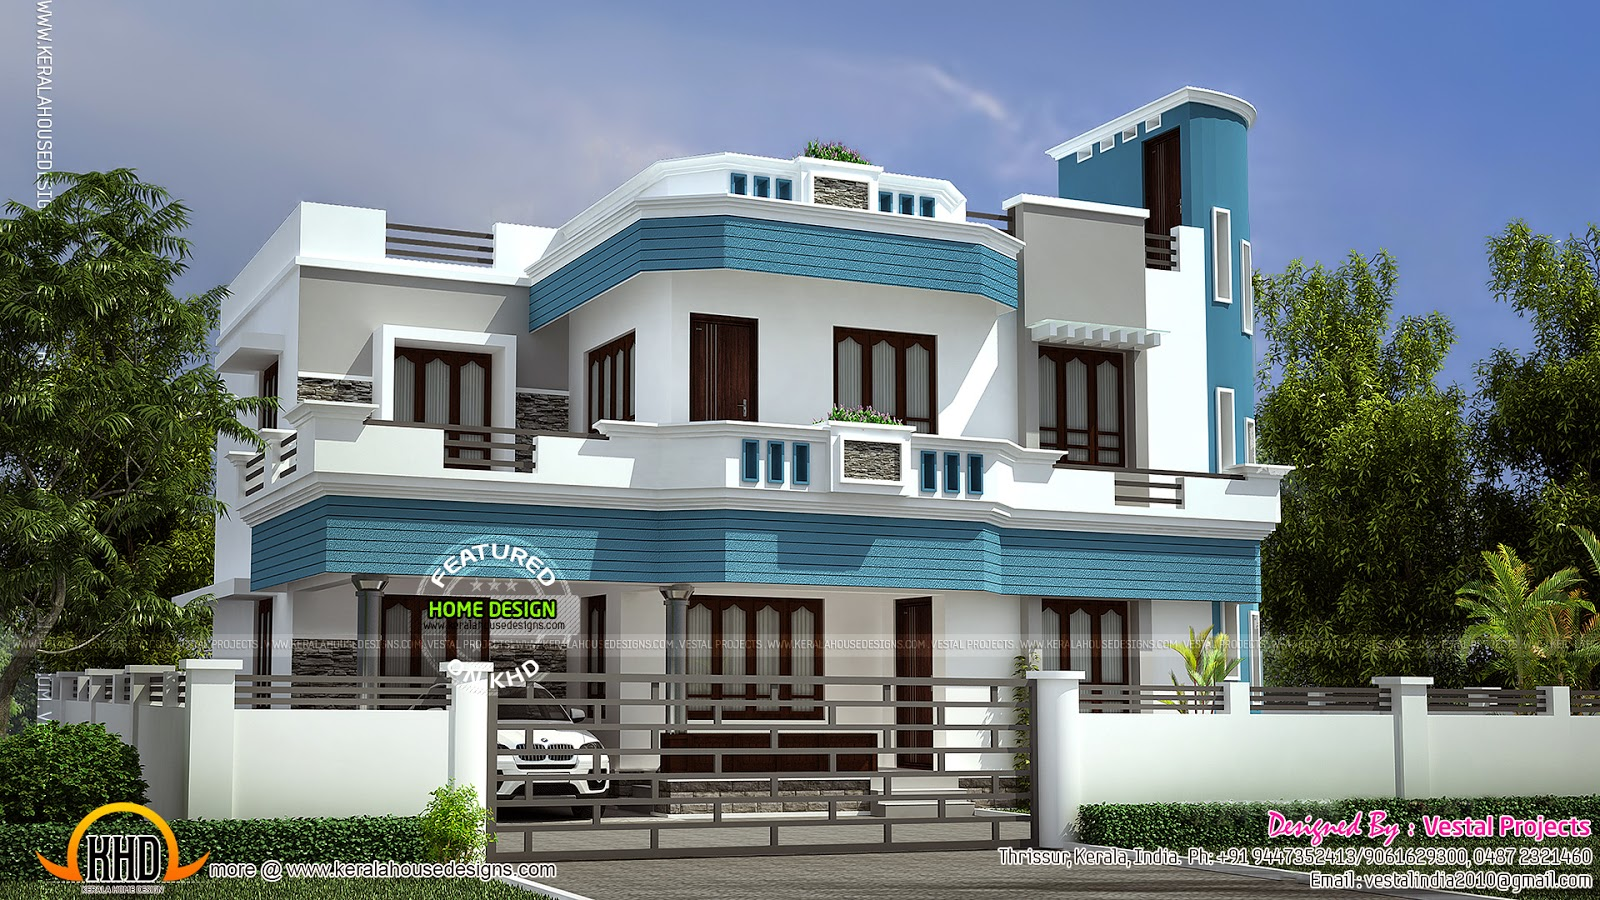 Awesome house by vestal projects kerala home design and for New design house image